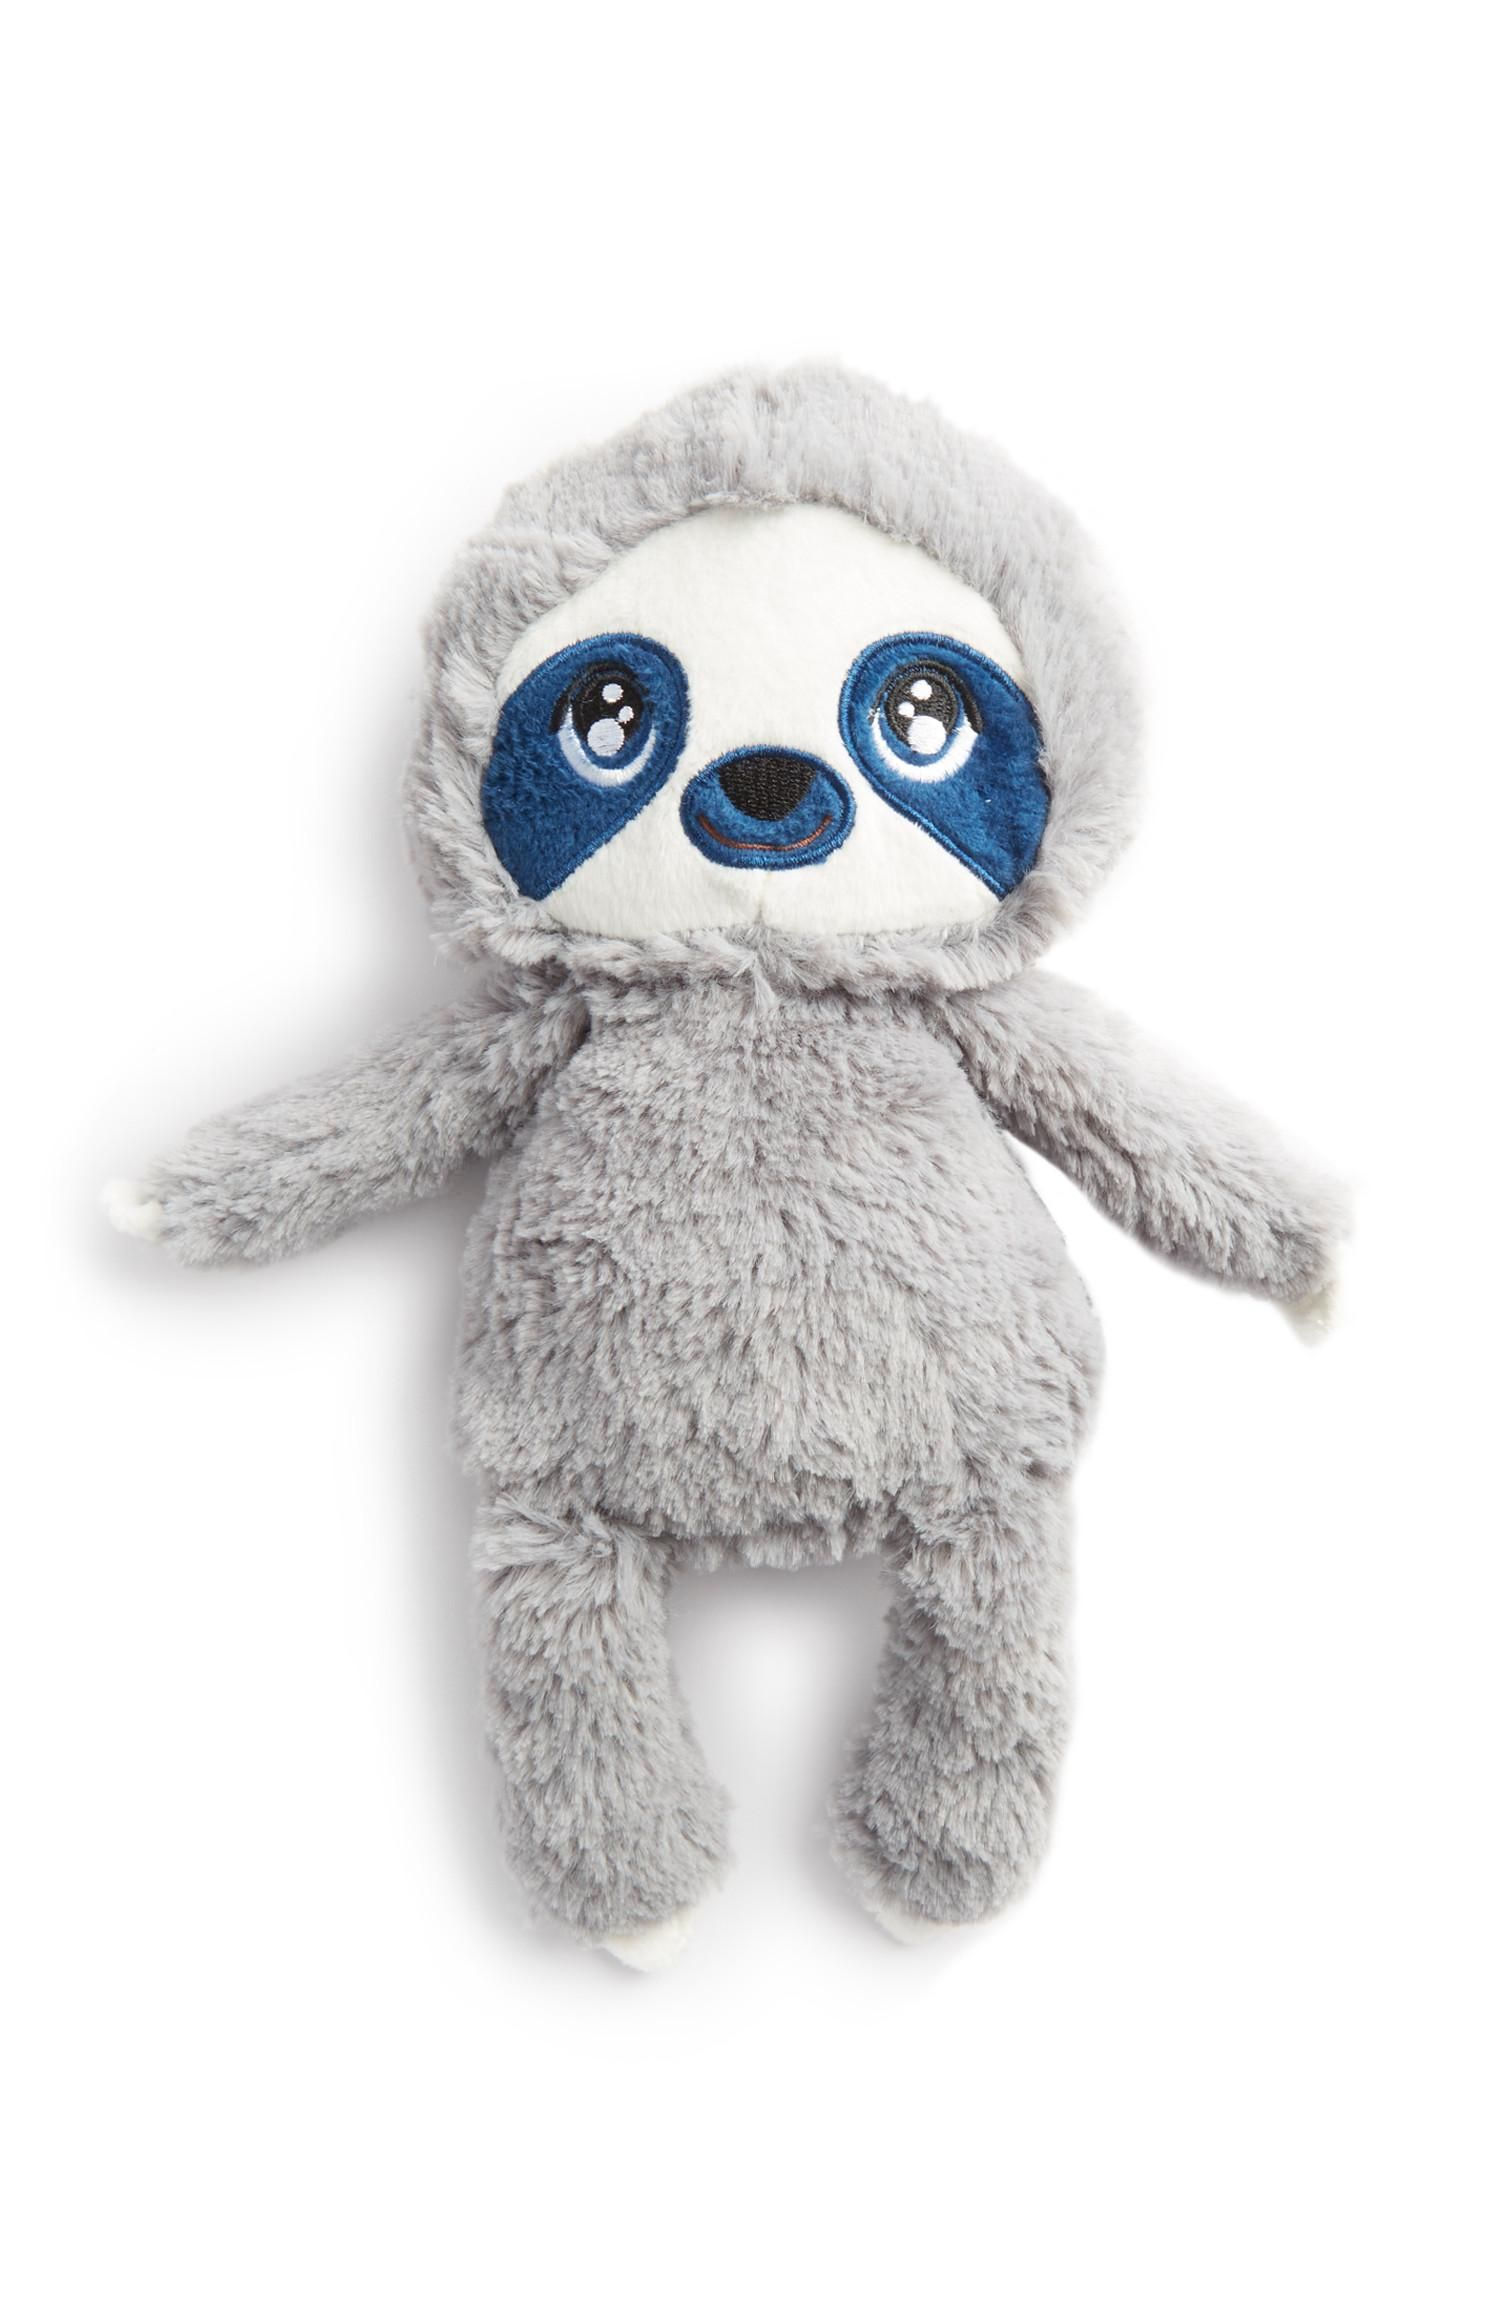 Pin by Itsanemu on Best Dog Toys in 2020 Sloth plush